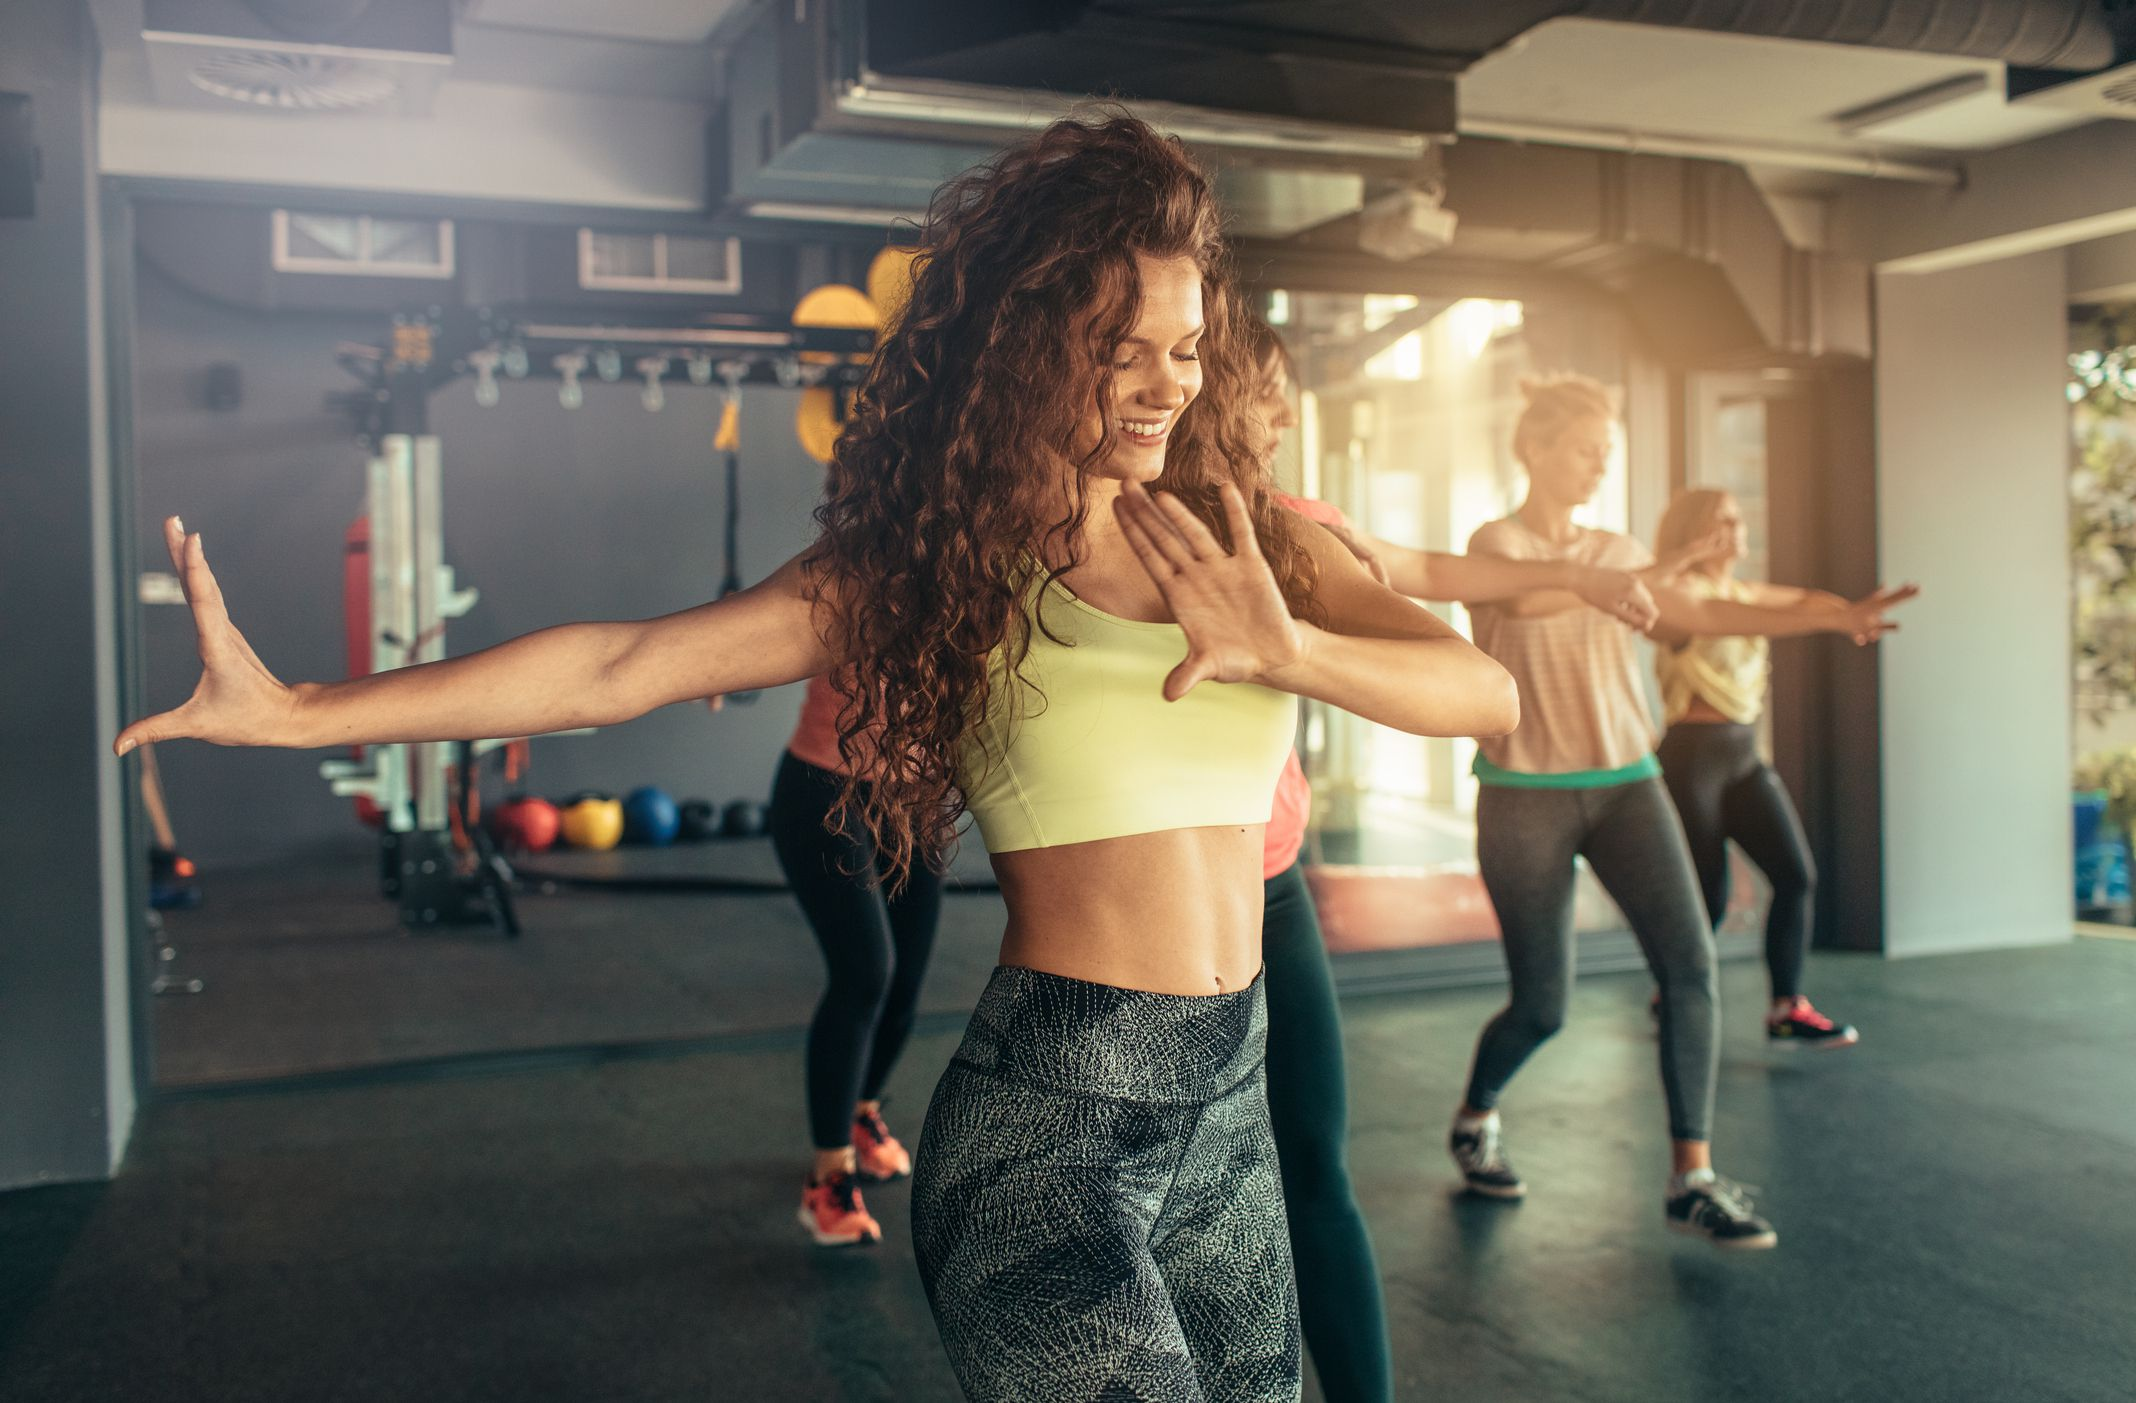 Wondrous Zumba Dance Is Perfect For Exercise And Weight Loss Wiring Digital Resources Instshebarightsorg